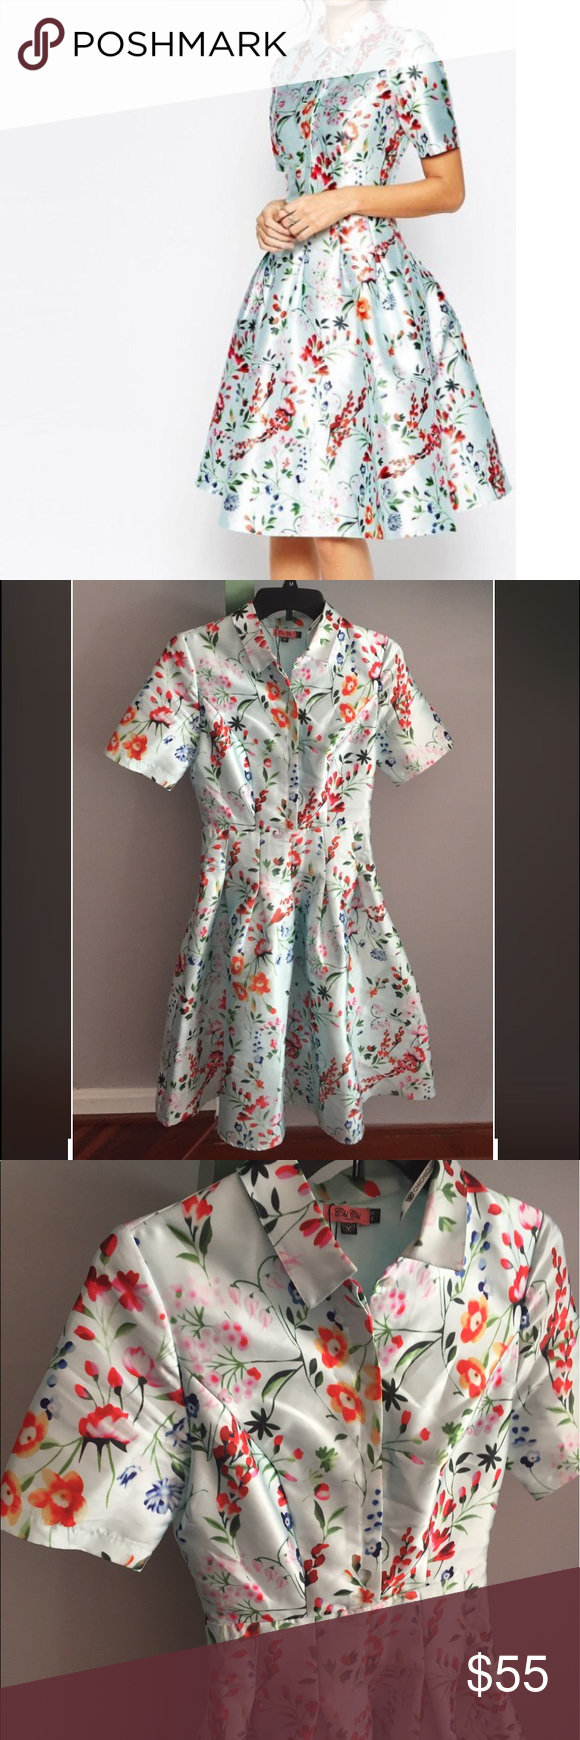 "•nwot• chi chi London Nora flare floral dress NWOT blue retro flare midi dress. Gorgeously shiny flowers with a slimming silhouette. Button up front, collar and flare skirt. Side zipper. Bust 17"". Waist 13"". Length 41.5"". Sized U.K. 8 but fits more like a US 2 comfortably ASOS Dresses Midi"